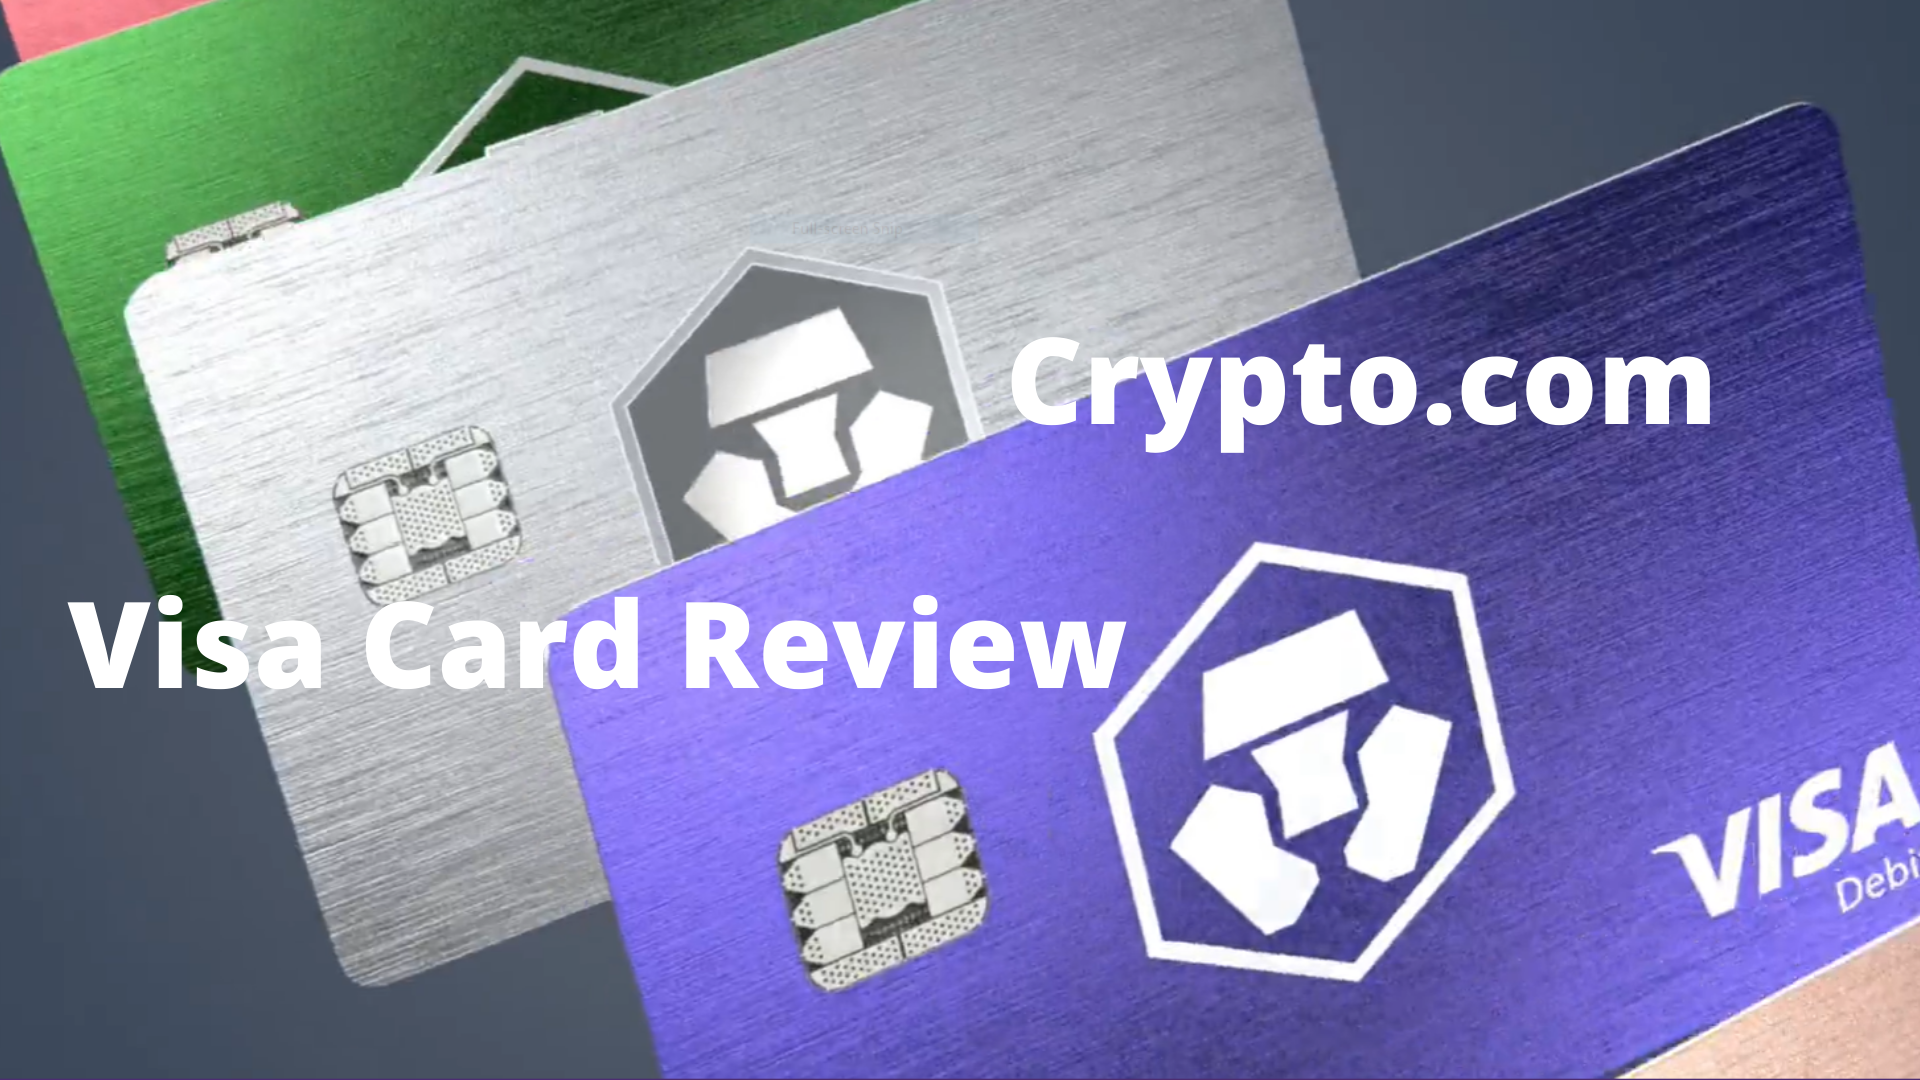 Crypto.com Visa Card Review | Crypto-Explained